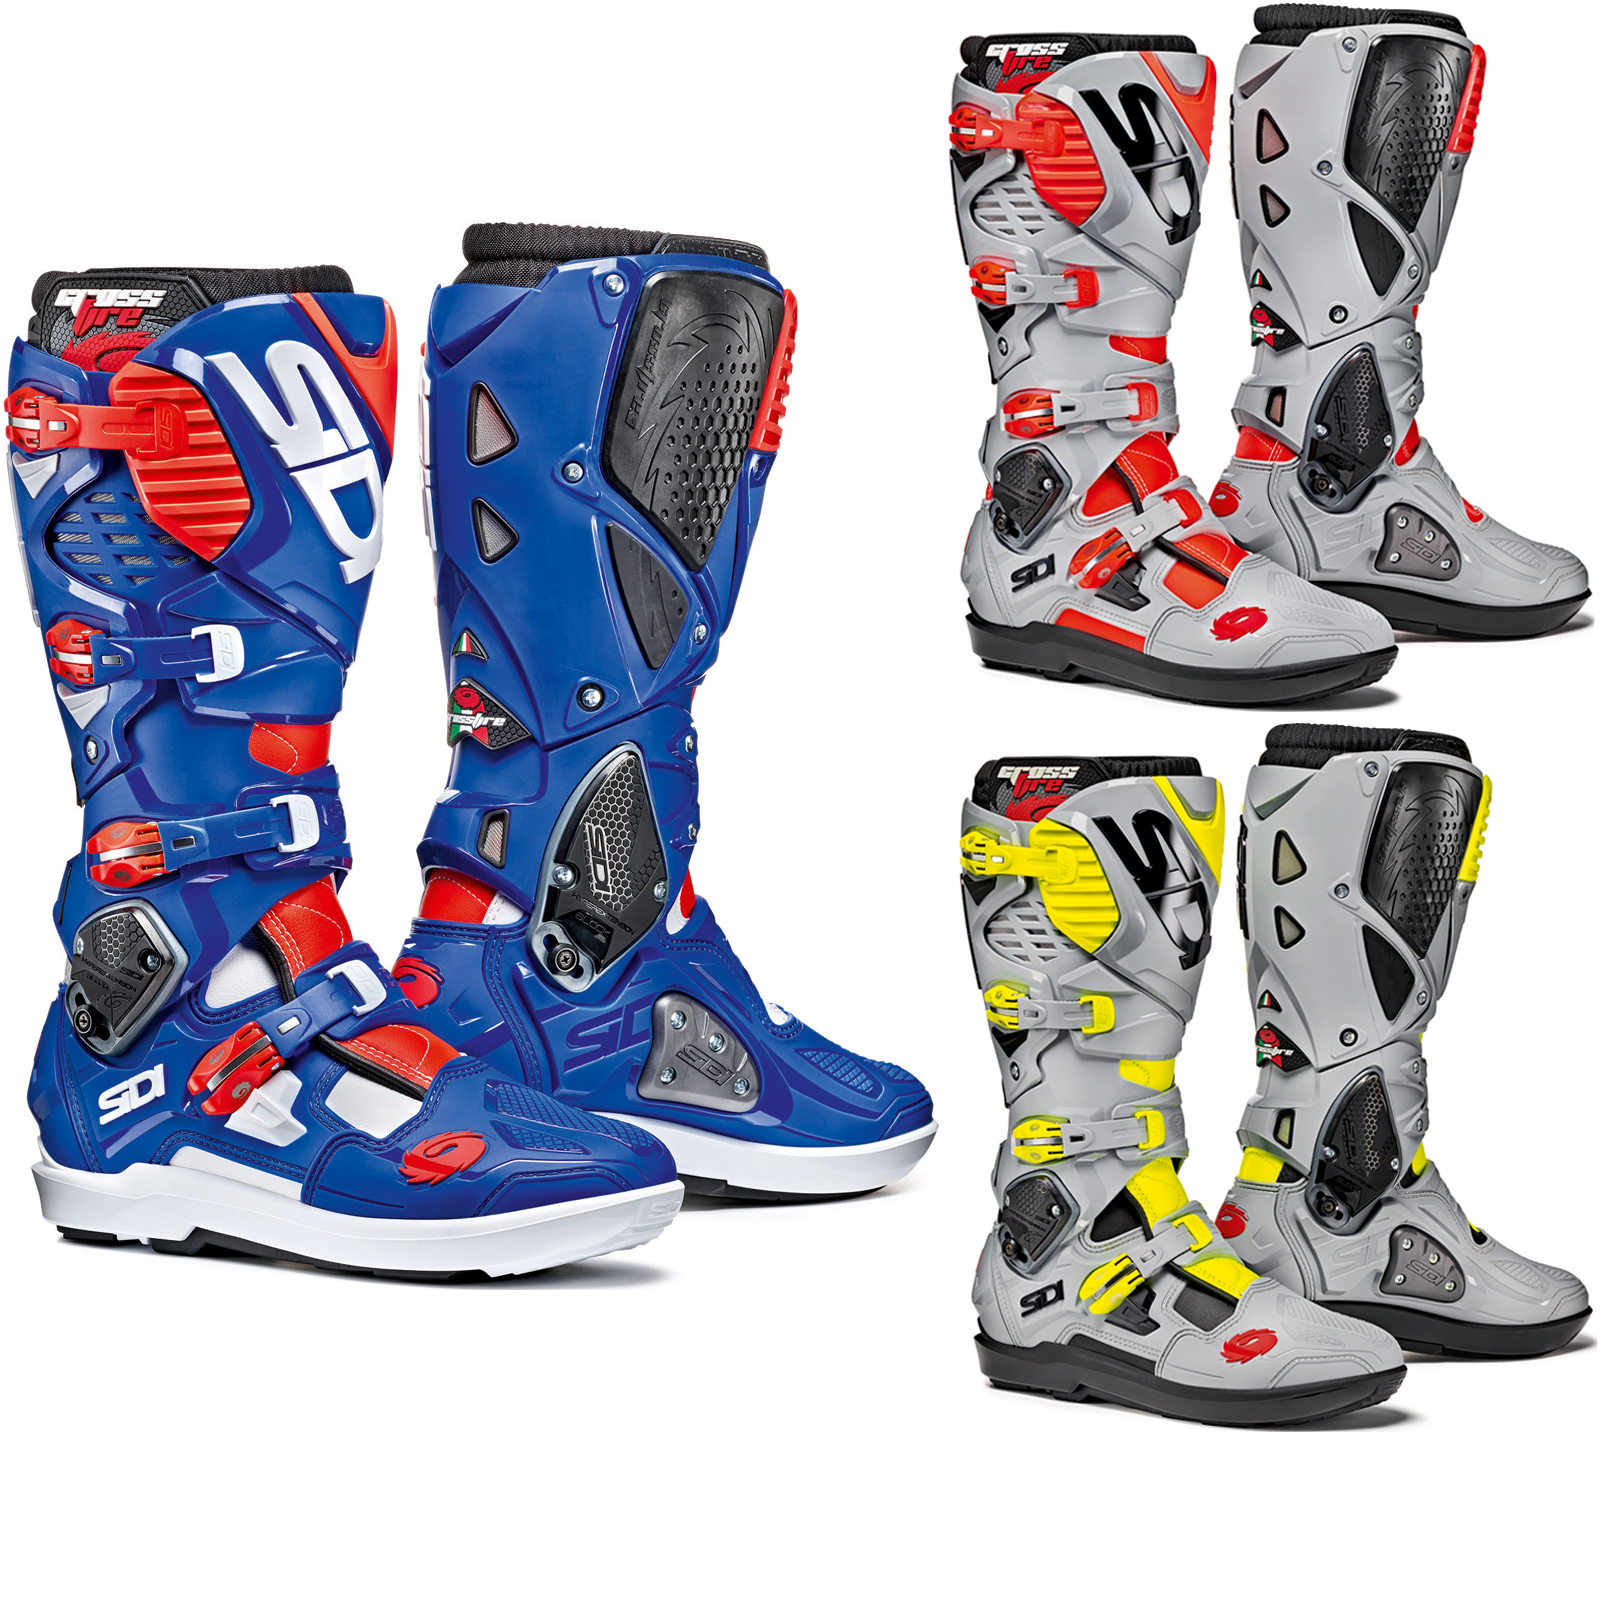 sidi crossfire 3 srs motocross boots new arrivals. Black Bedroom Furniture Sets. Home Design Ideas